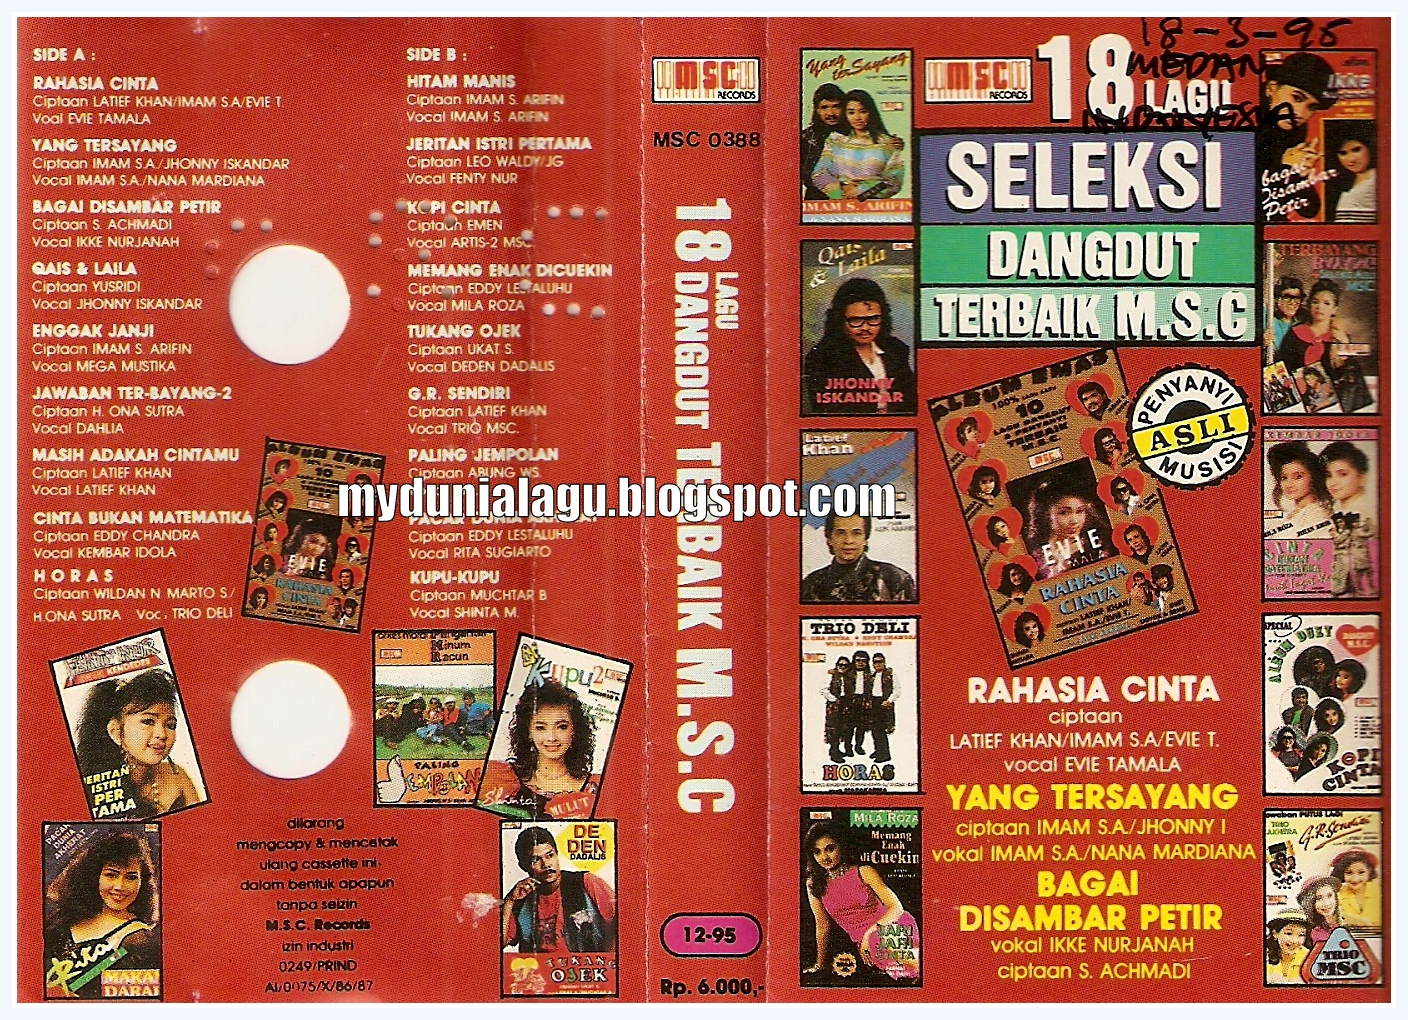 Posted by The Real Dangduter at 7:00 AM No comments: